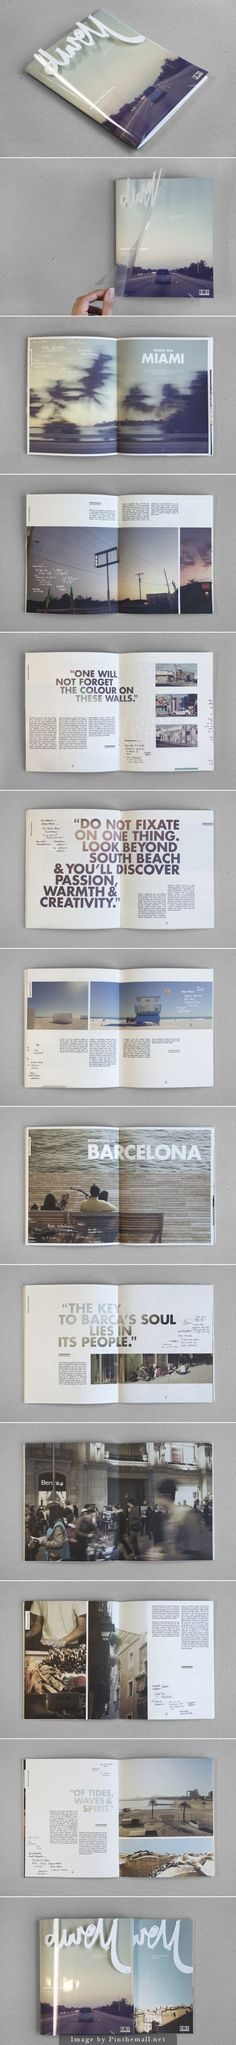 TRANSPARÊNCIA É ISSO - NOVOS FUNDAMENTOS DO DESIGN. Graphic design for 'Dwell - Coastal Cities Revisited' by Sidney Lim YX // Editorial design inspiration